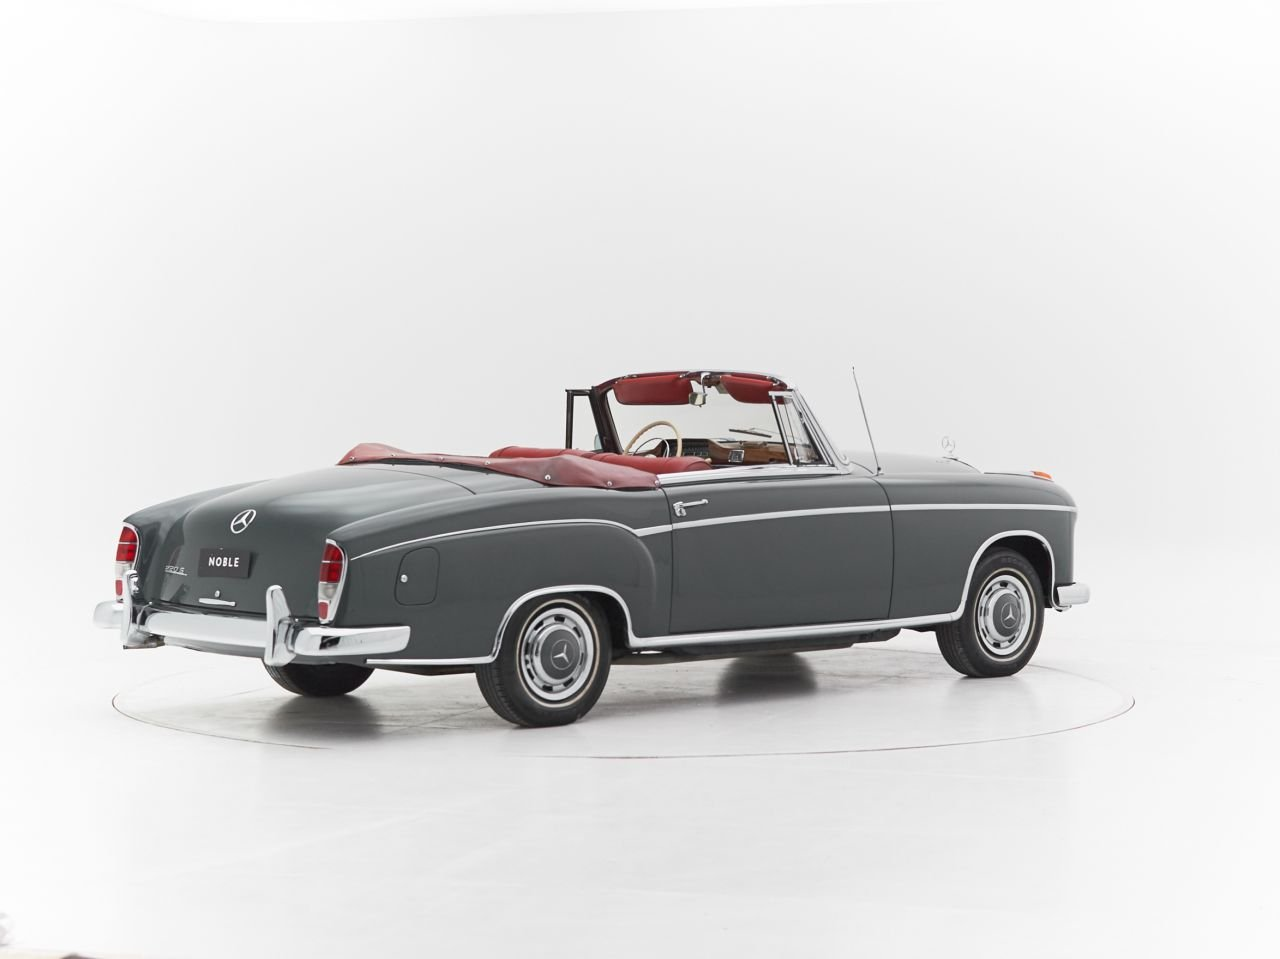 1959 MERCEDES 220S PONTON CABRIOLET for sale For Sale by Auction (picture 2 of 6)